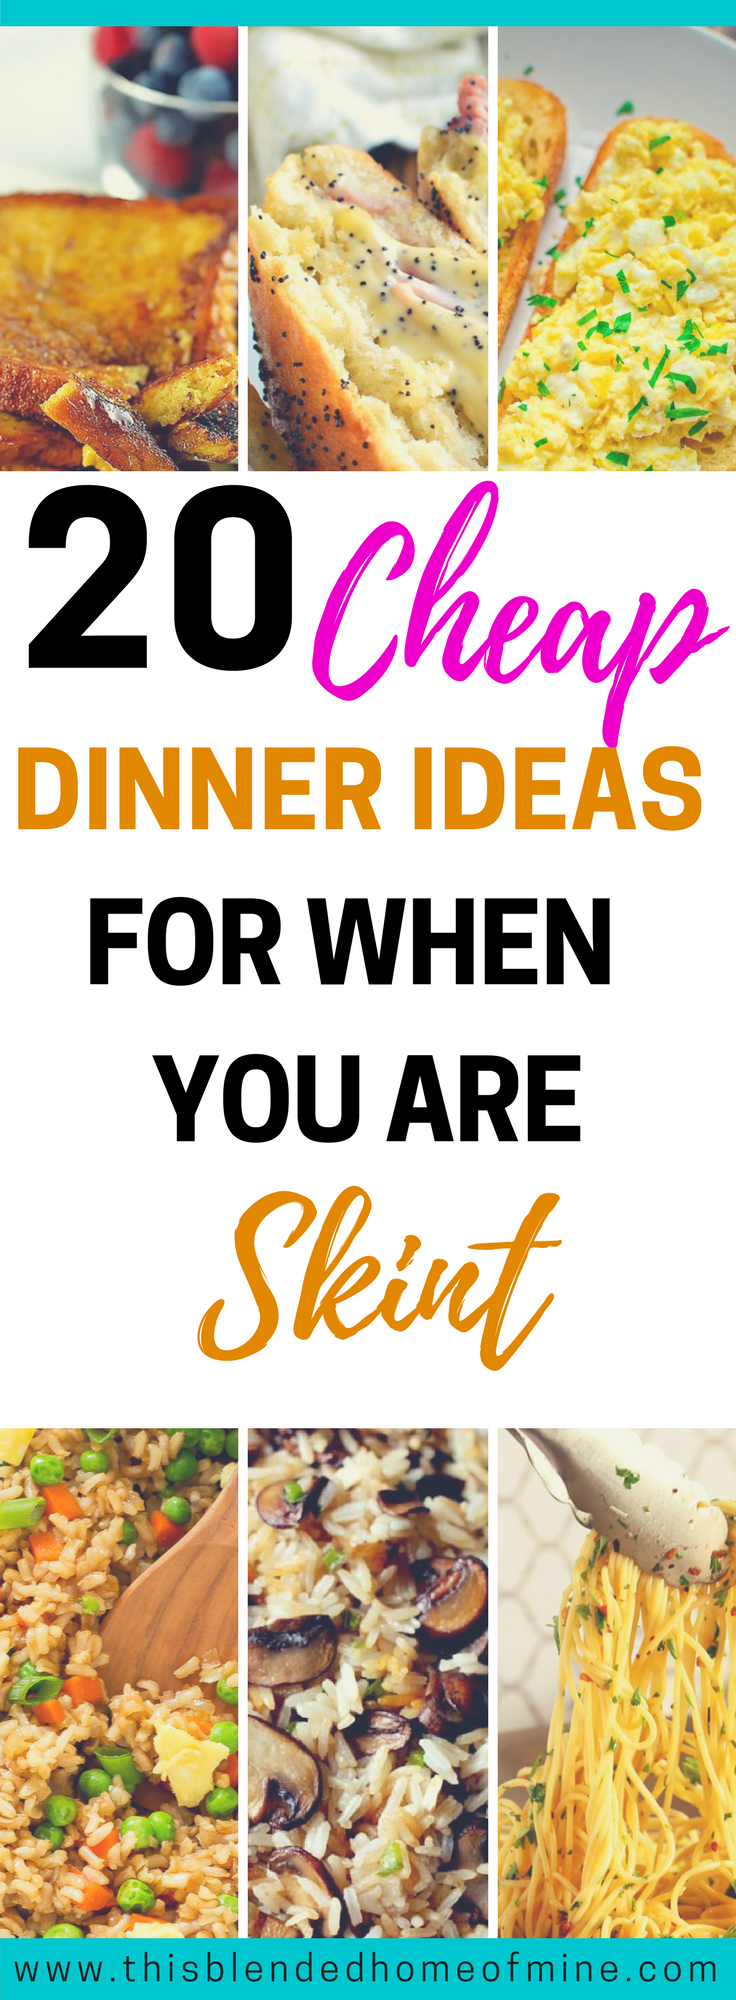 20 cheap dinner ideas for when your are skint on money food or